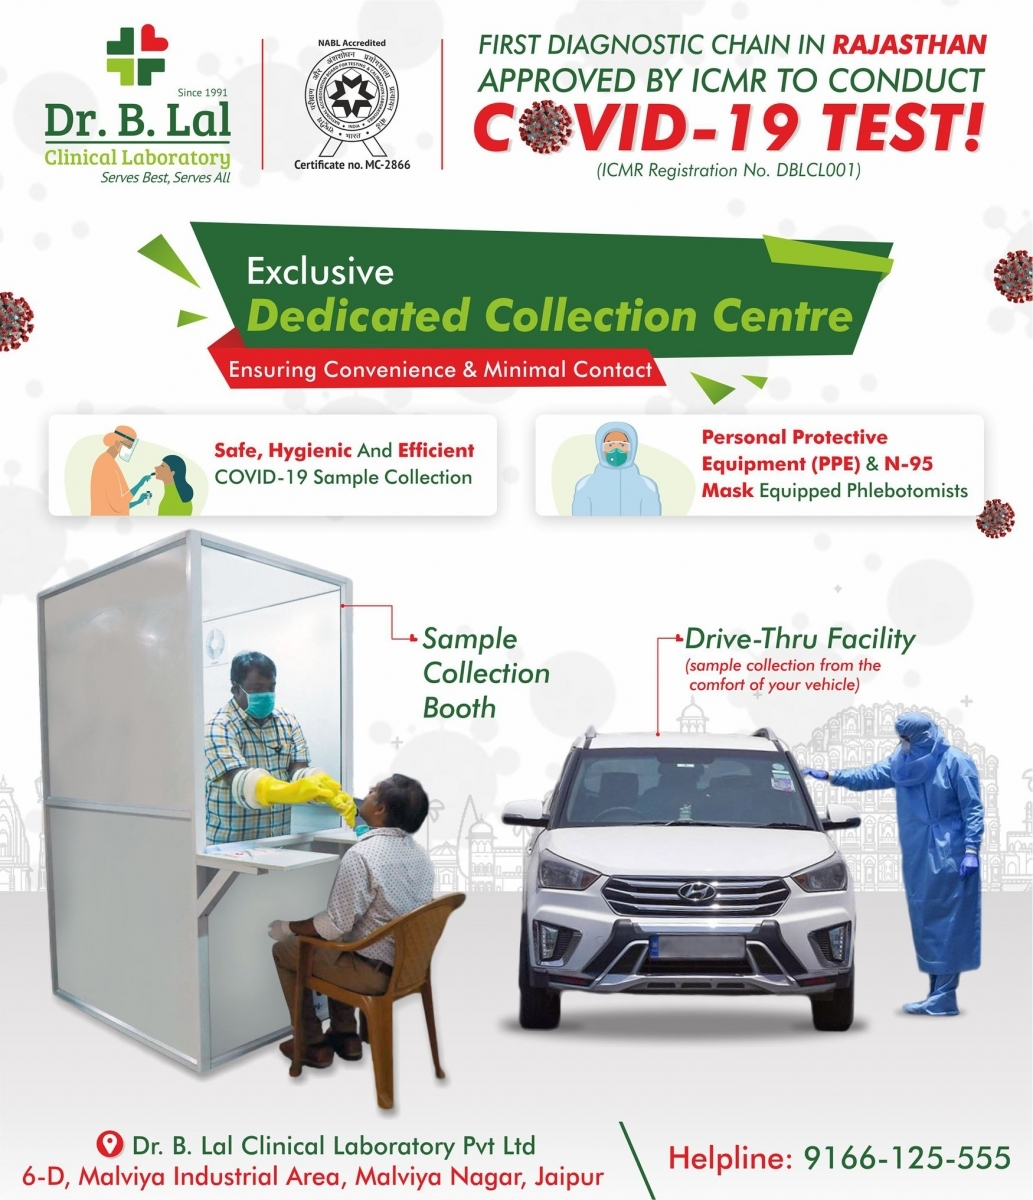 COVID-19 Testing at Dr. B. Lal Clinical Laboratory | Drive-Thru and Walk-in Facility